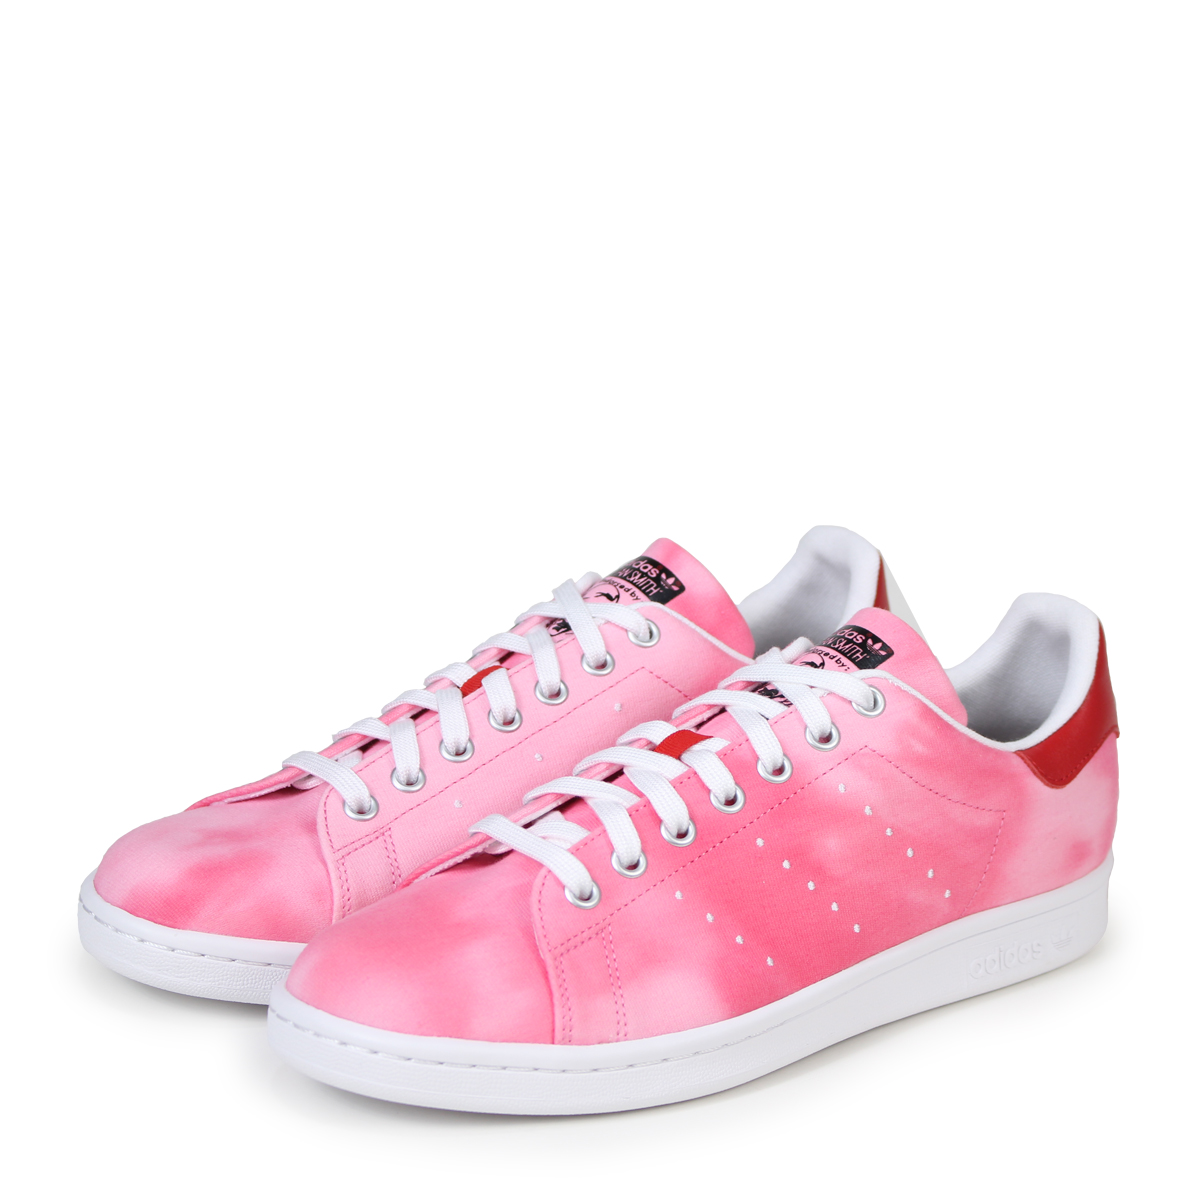 in stock a667a d4031 adidas Originals PW HU HOLI STAN SMITH Adidas Stan Smith sneakers Farrell  Williams men collaboration AC7044 red originals [3/20 Shinnyu load] [183]